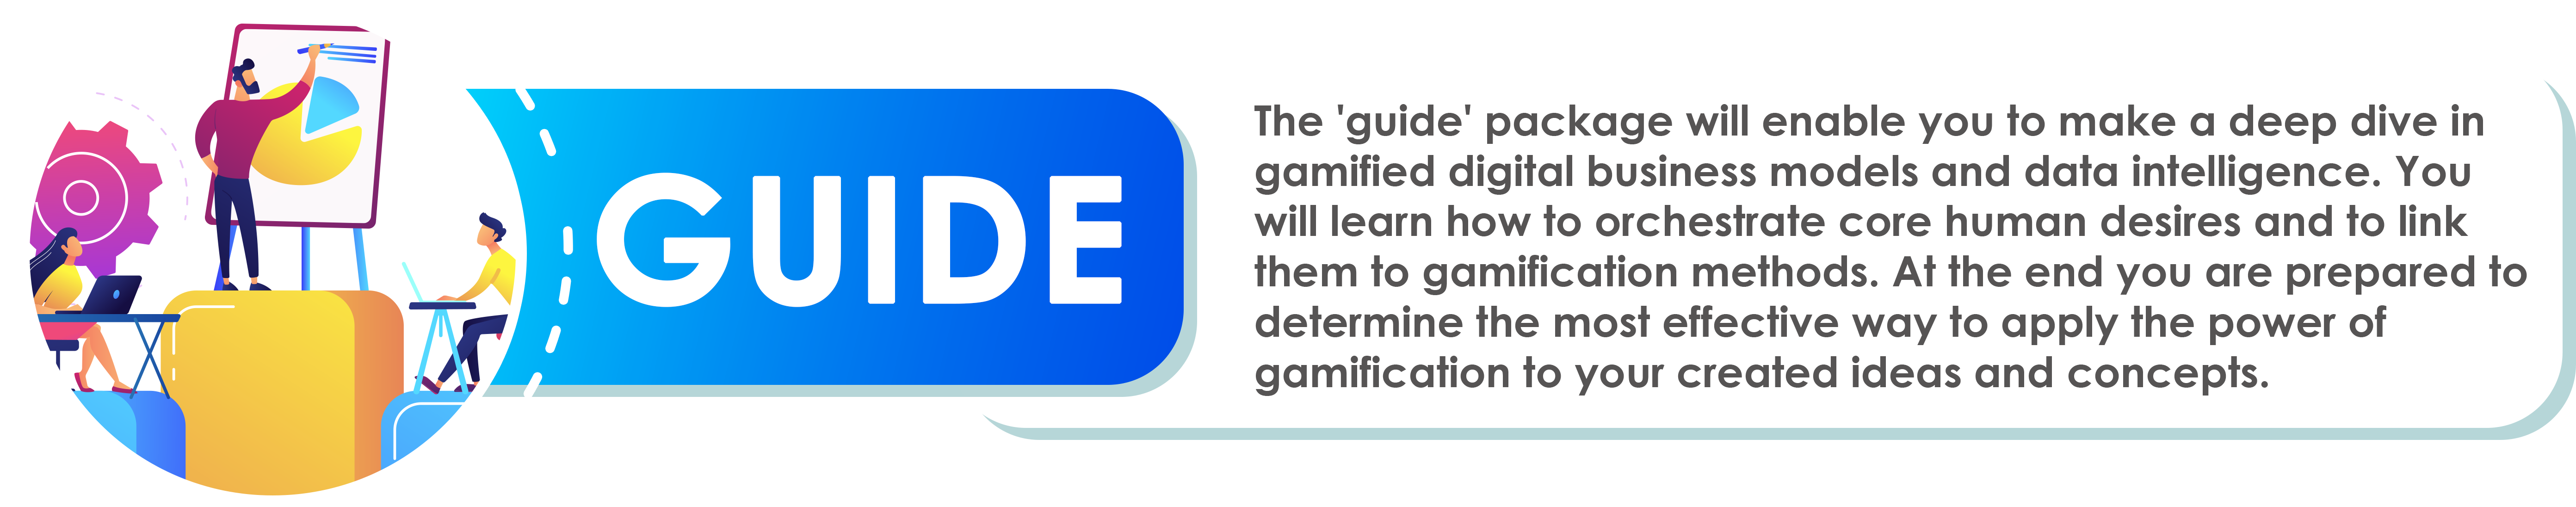 Gamification - Guide